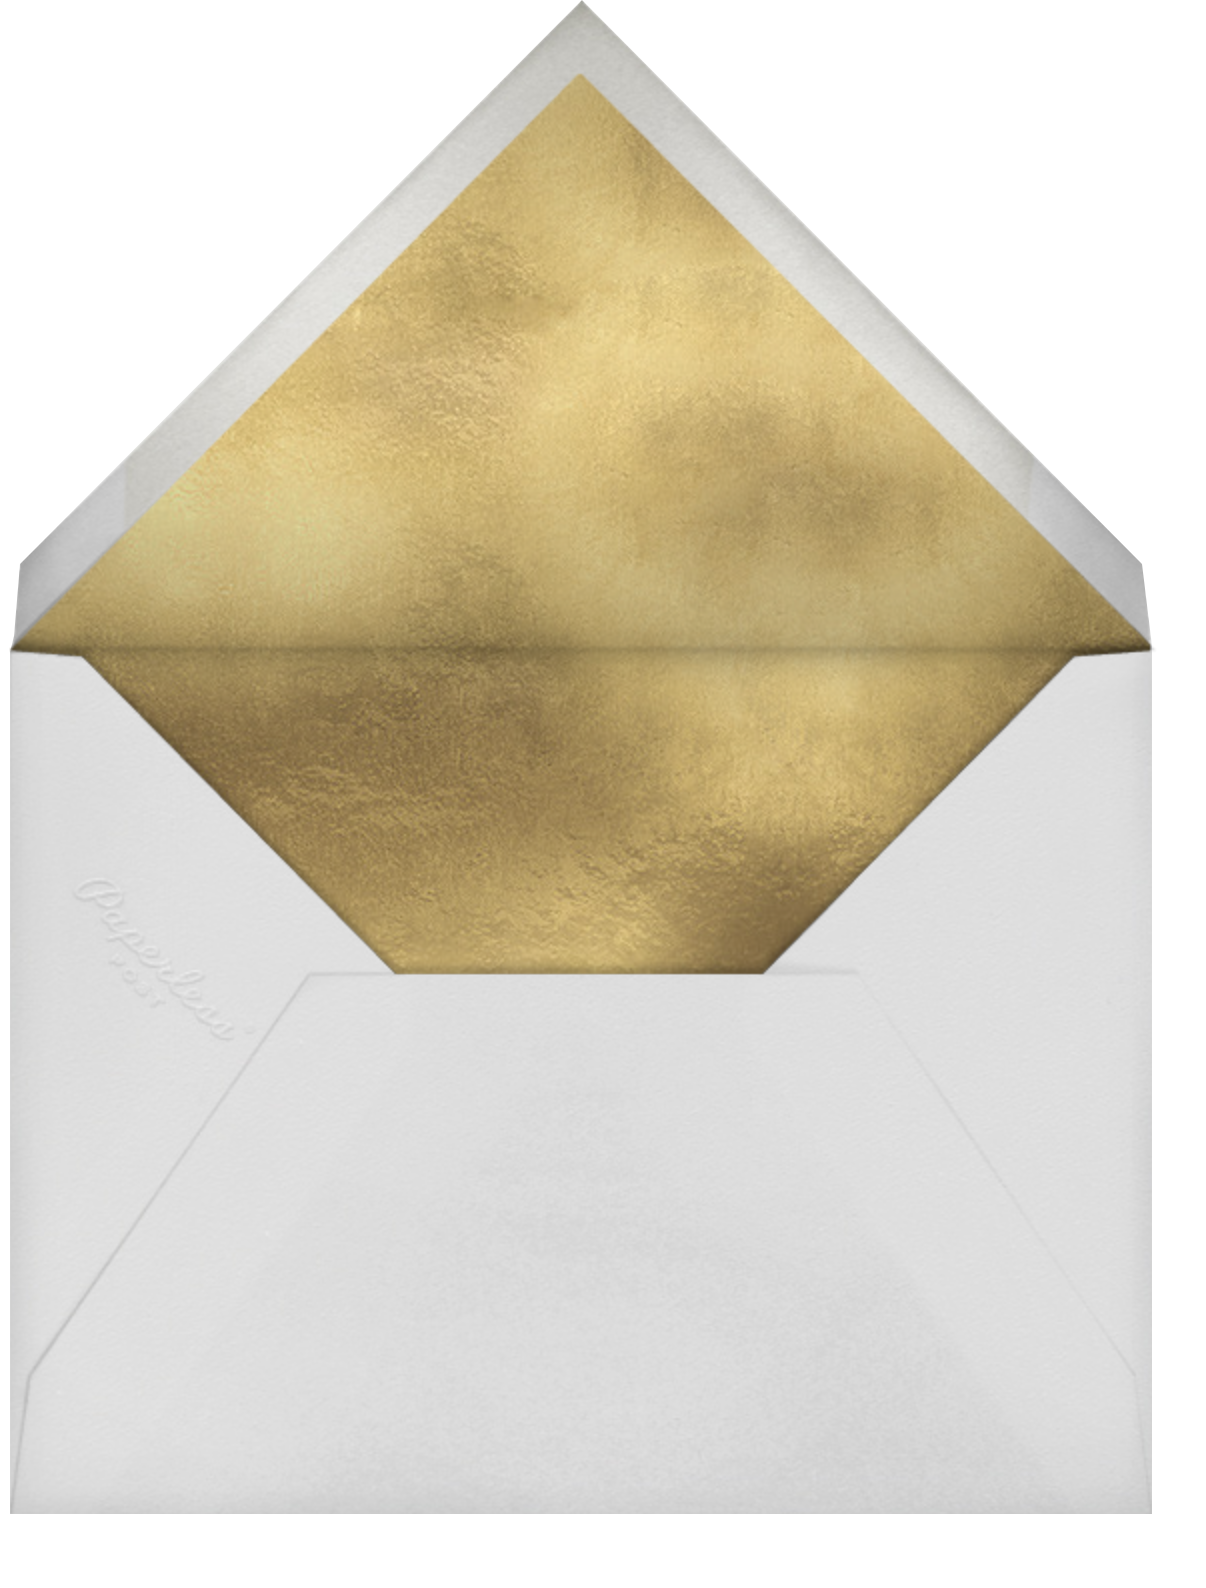 Raw Edge - Paperless Post - Wedding postponement - envelope back